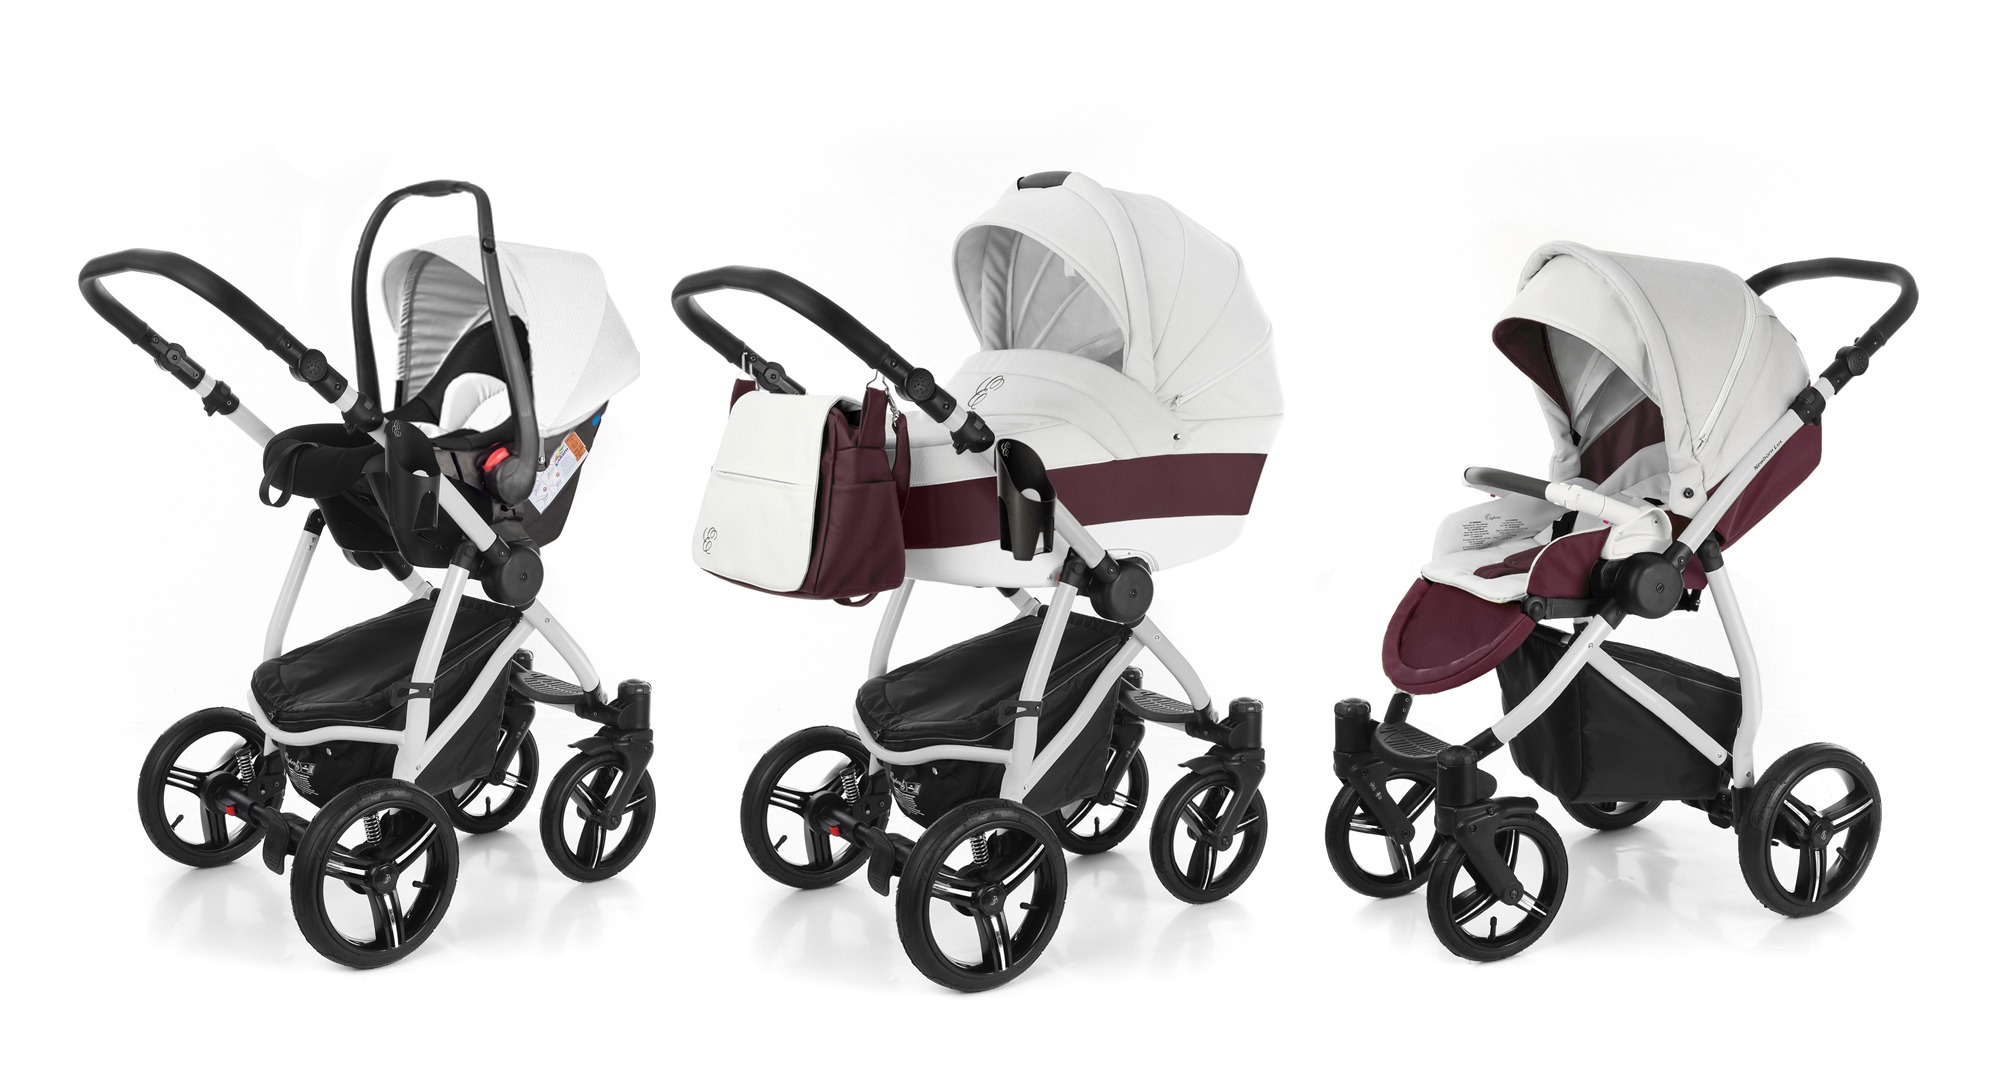 Коляска 3 в 1 Esspero Grand Newborn Lux (шасси Grey). Фото N5